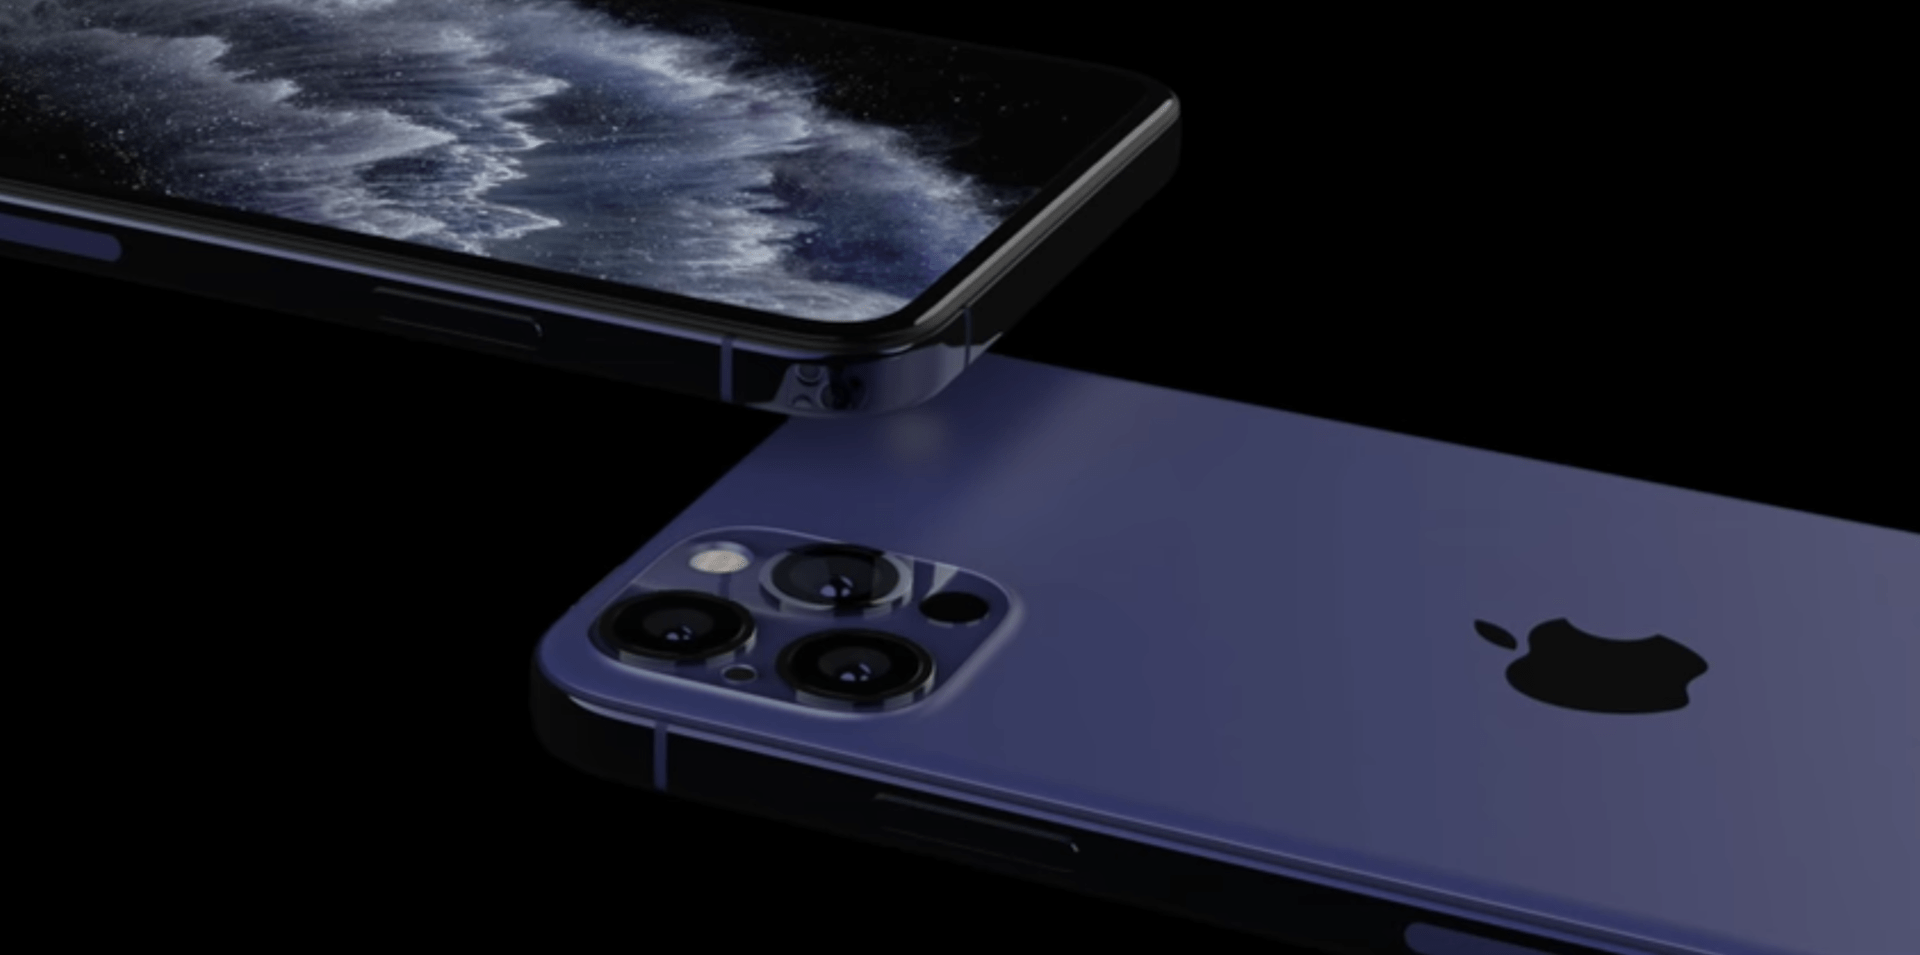 Nuovi rendering per Apple iPhone 12 e la fantastica colorazione Navy blue